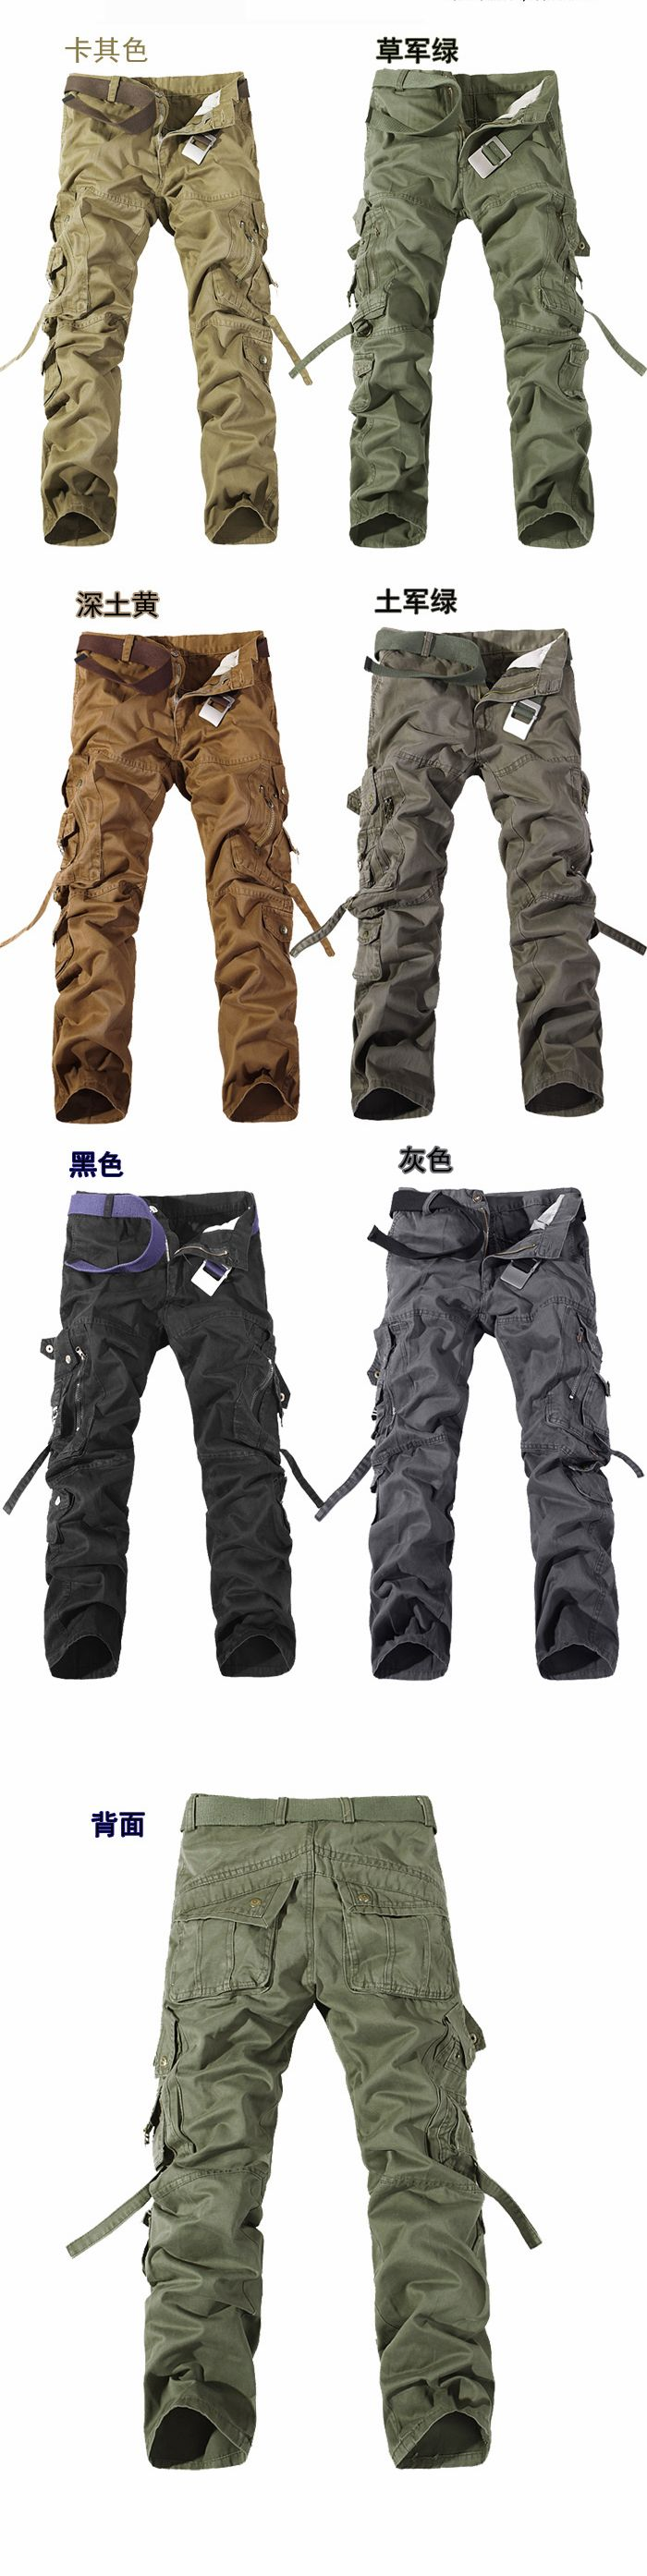 MIXCUBIC 2019 spring Autumn army tactical pants Multi-pocket washing loose army green cargo pants men casual Tooling pants 28-42 11